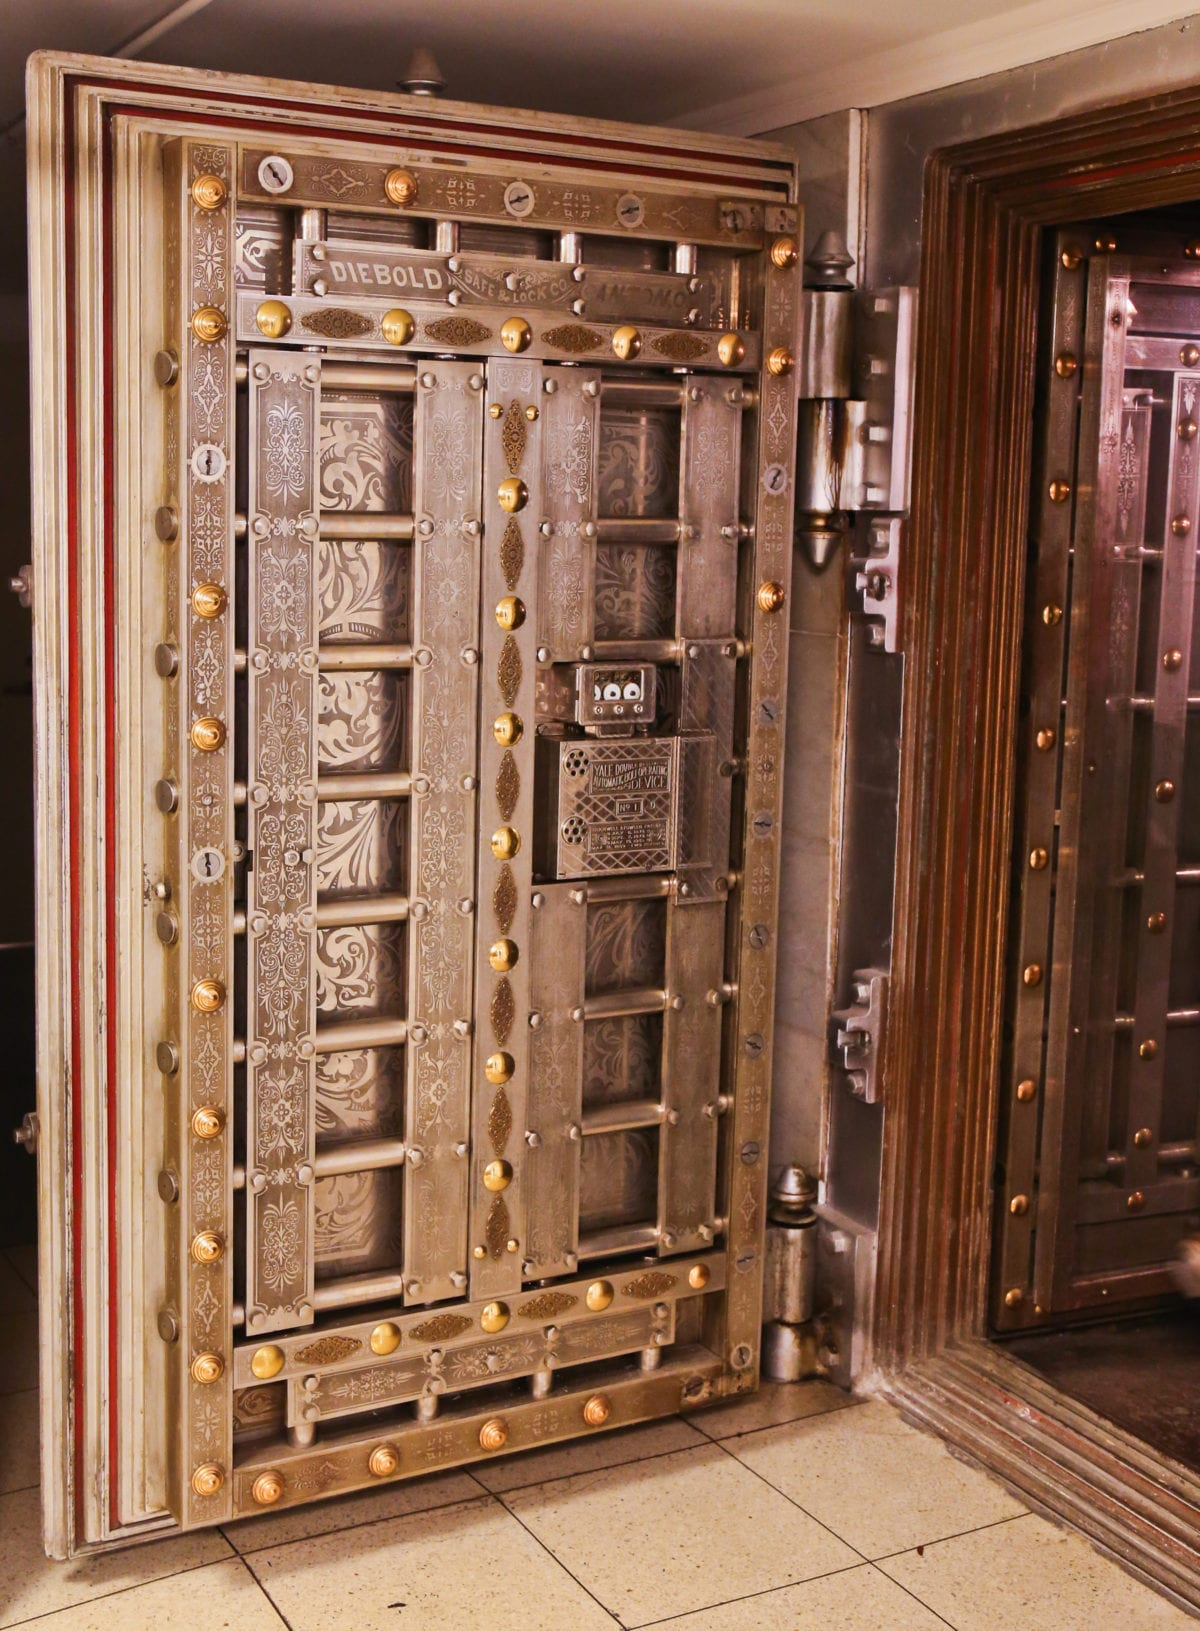 Rookery Building Basement Vault Room Safeguards Remnants From Its Repairs And Renovations